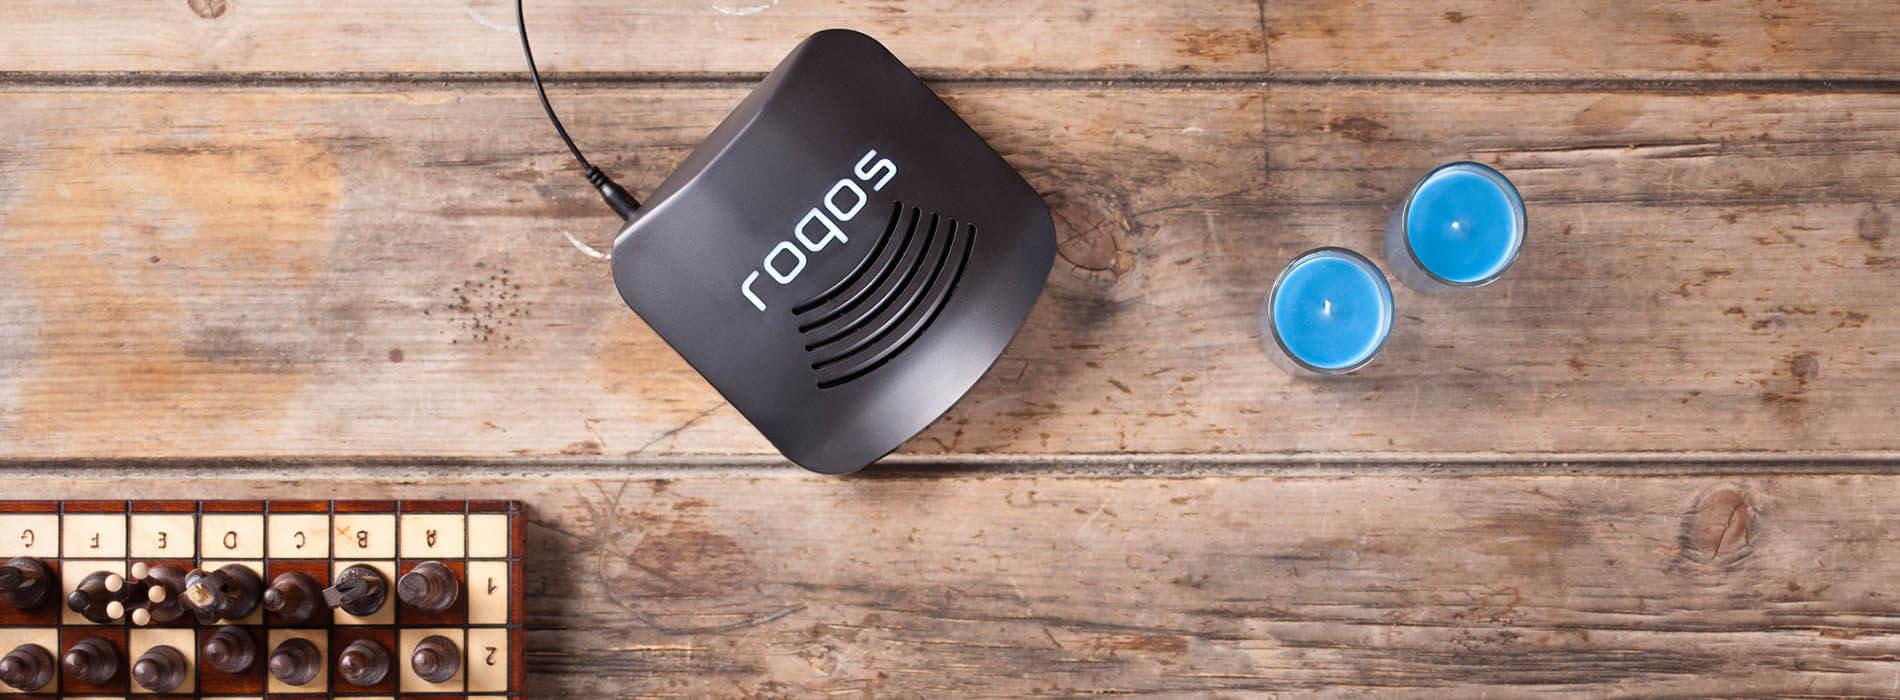 ROQOS core VPN router